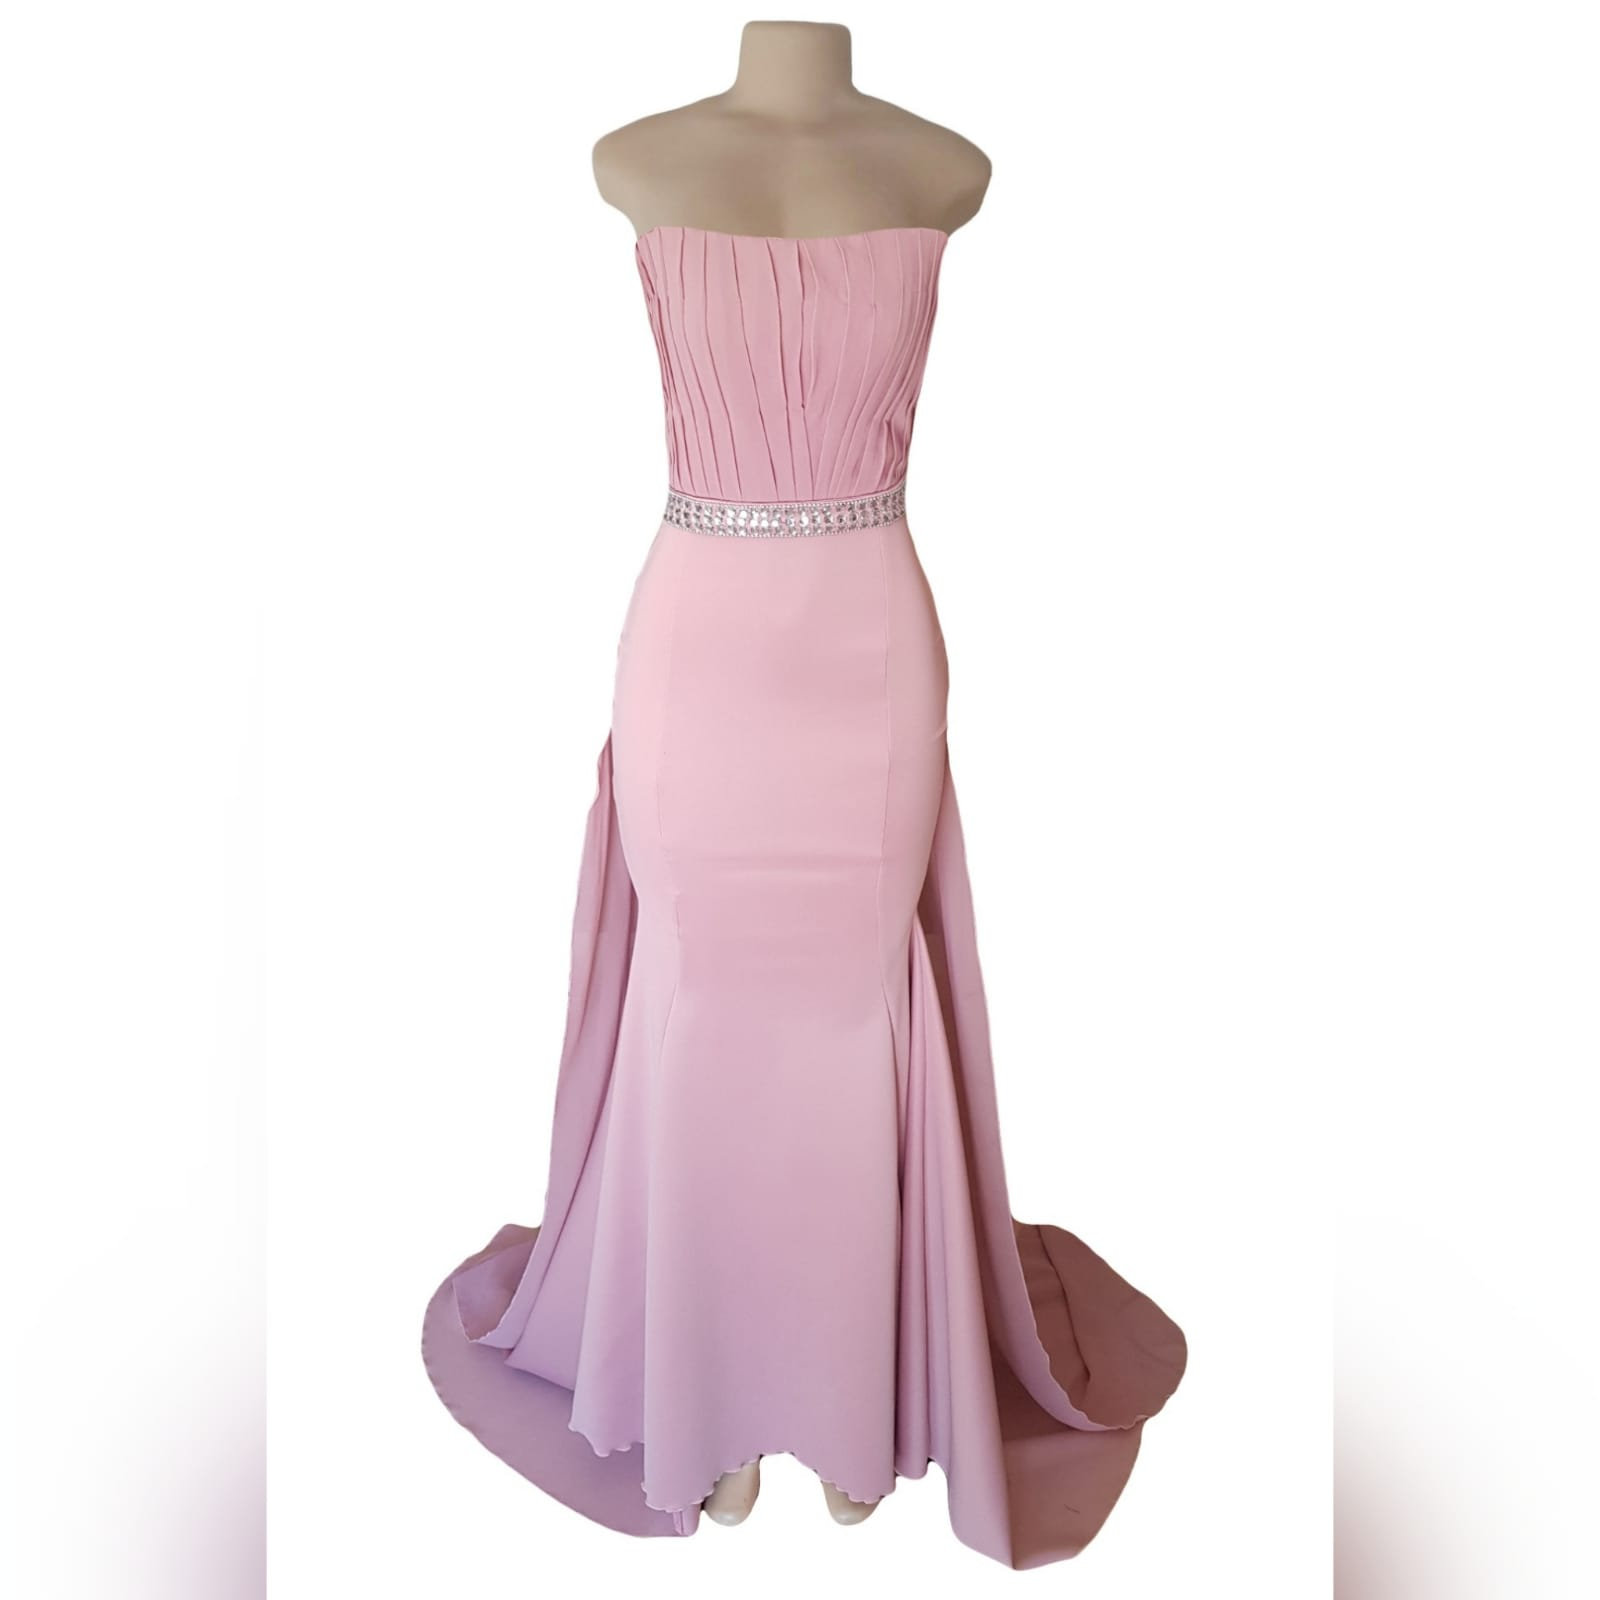 Dusty pink soft mermaid matric dress with a pleated bodice 12 dusty pink soft mermaid matric dress with a pleated bodice, with a train. Extra detachable chiffon train with a beaded belt and removable shoulder straps